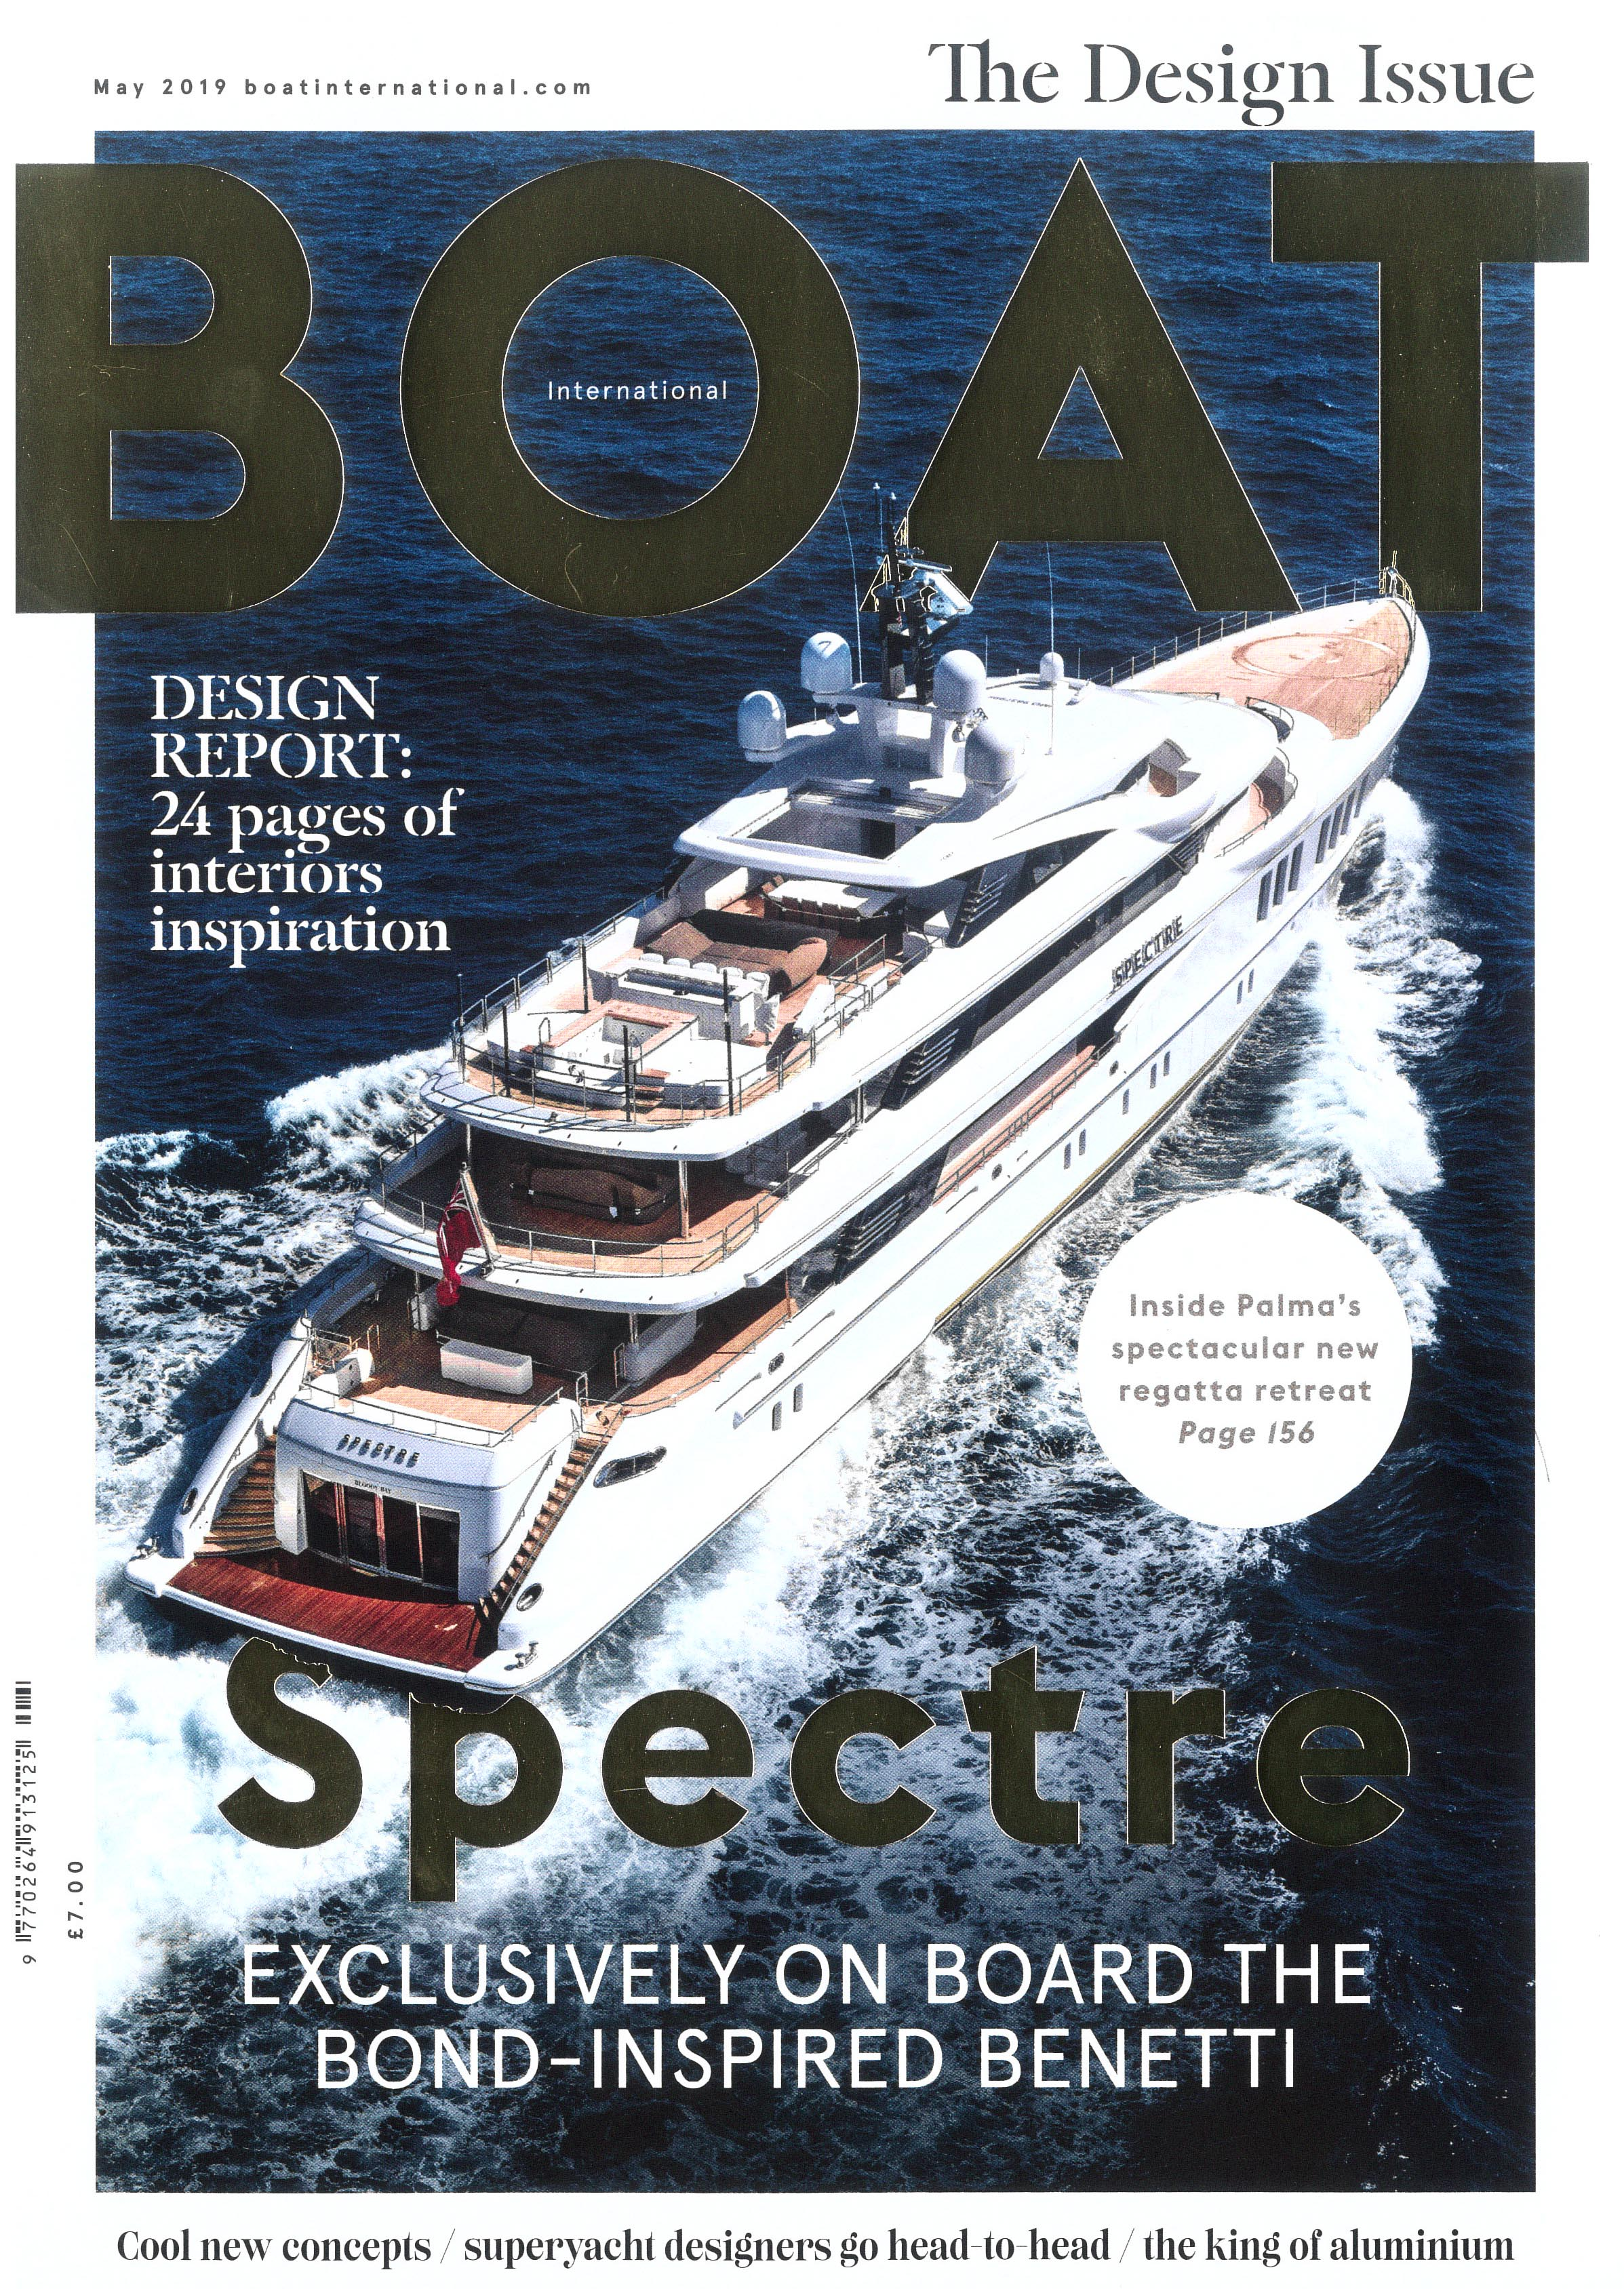 Boat International US edition, May 2019